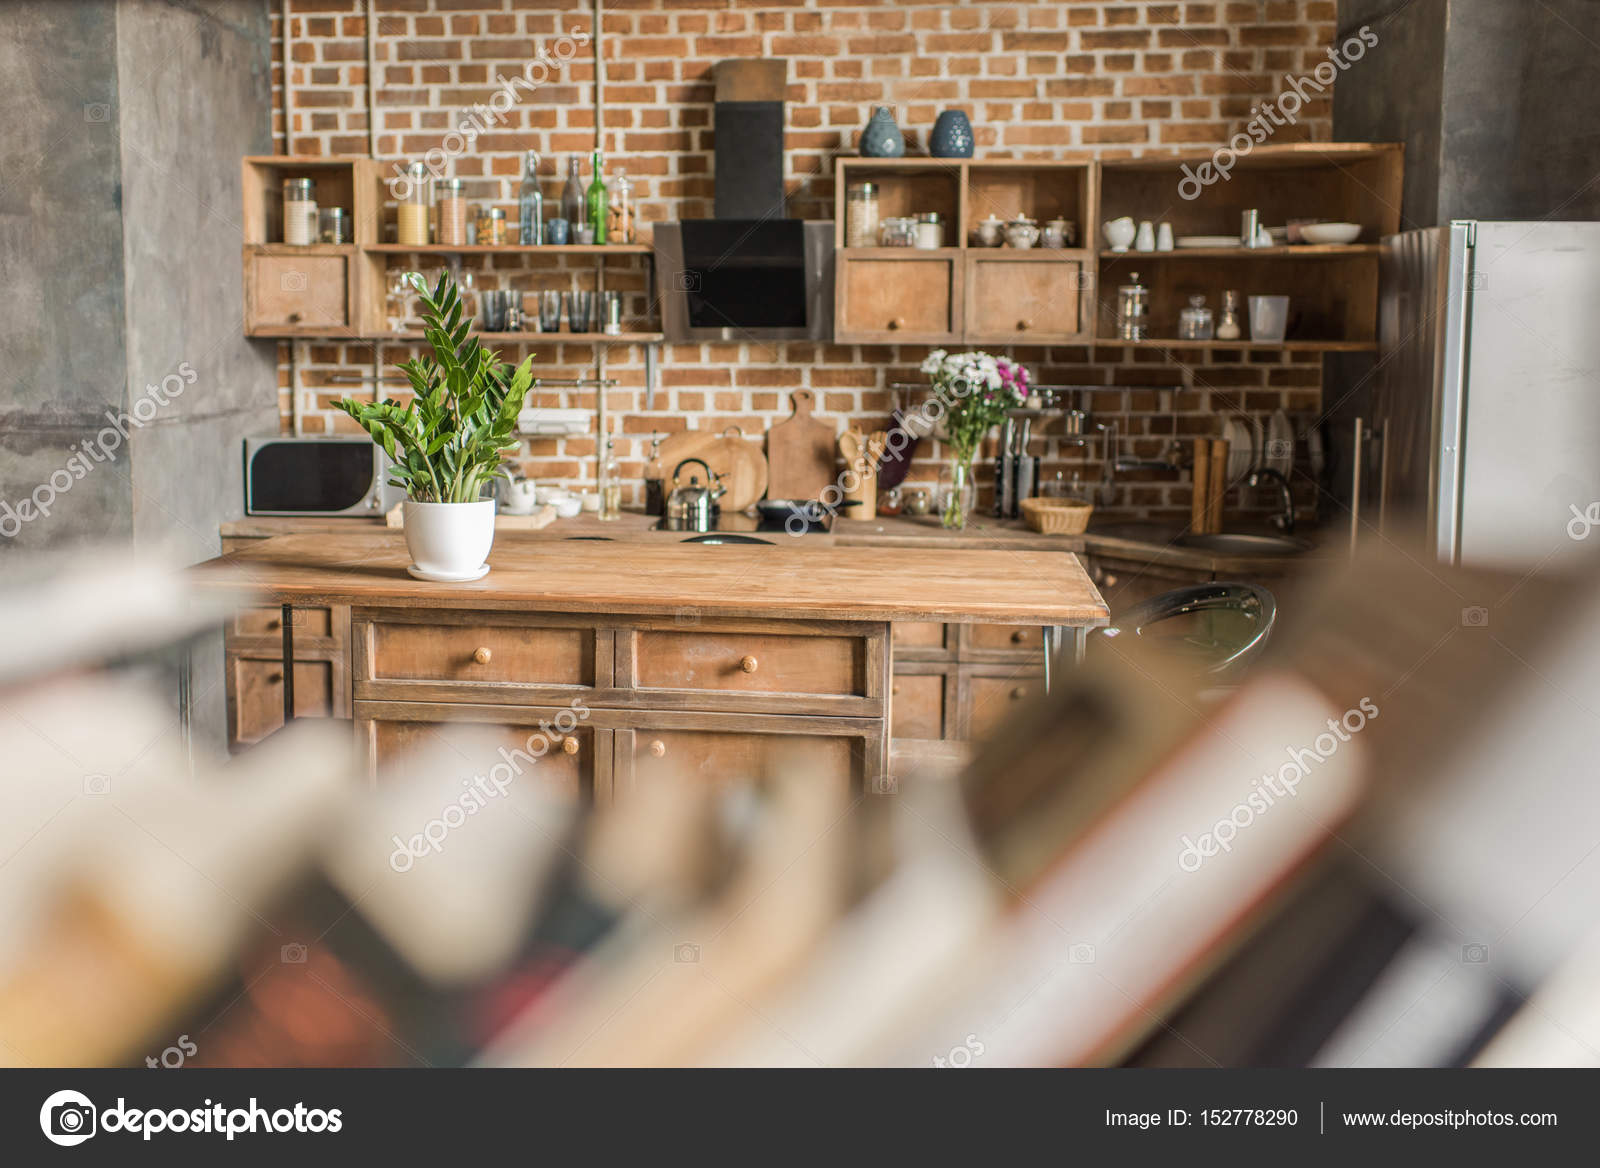 Interior Of Kitchen With Brick Wall In Loft Style Focus On